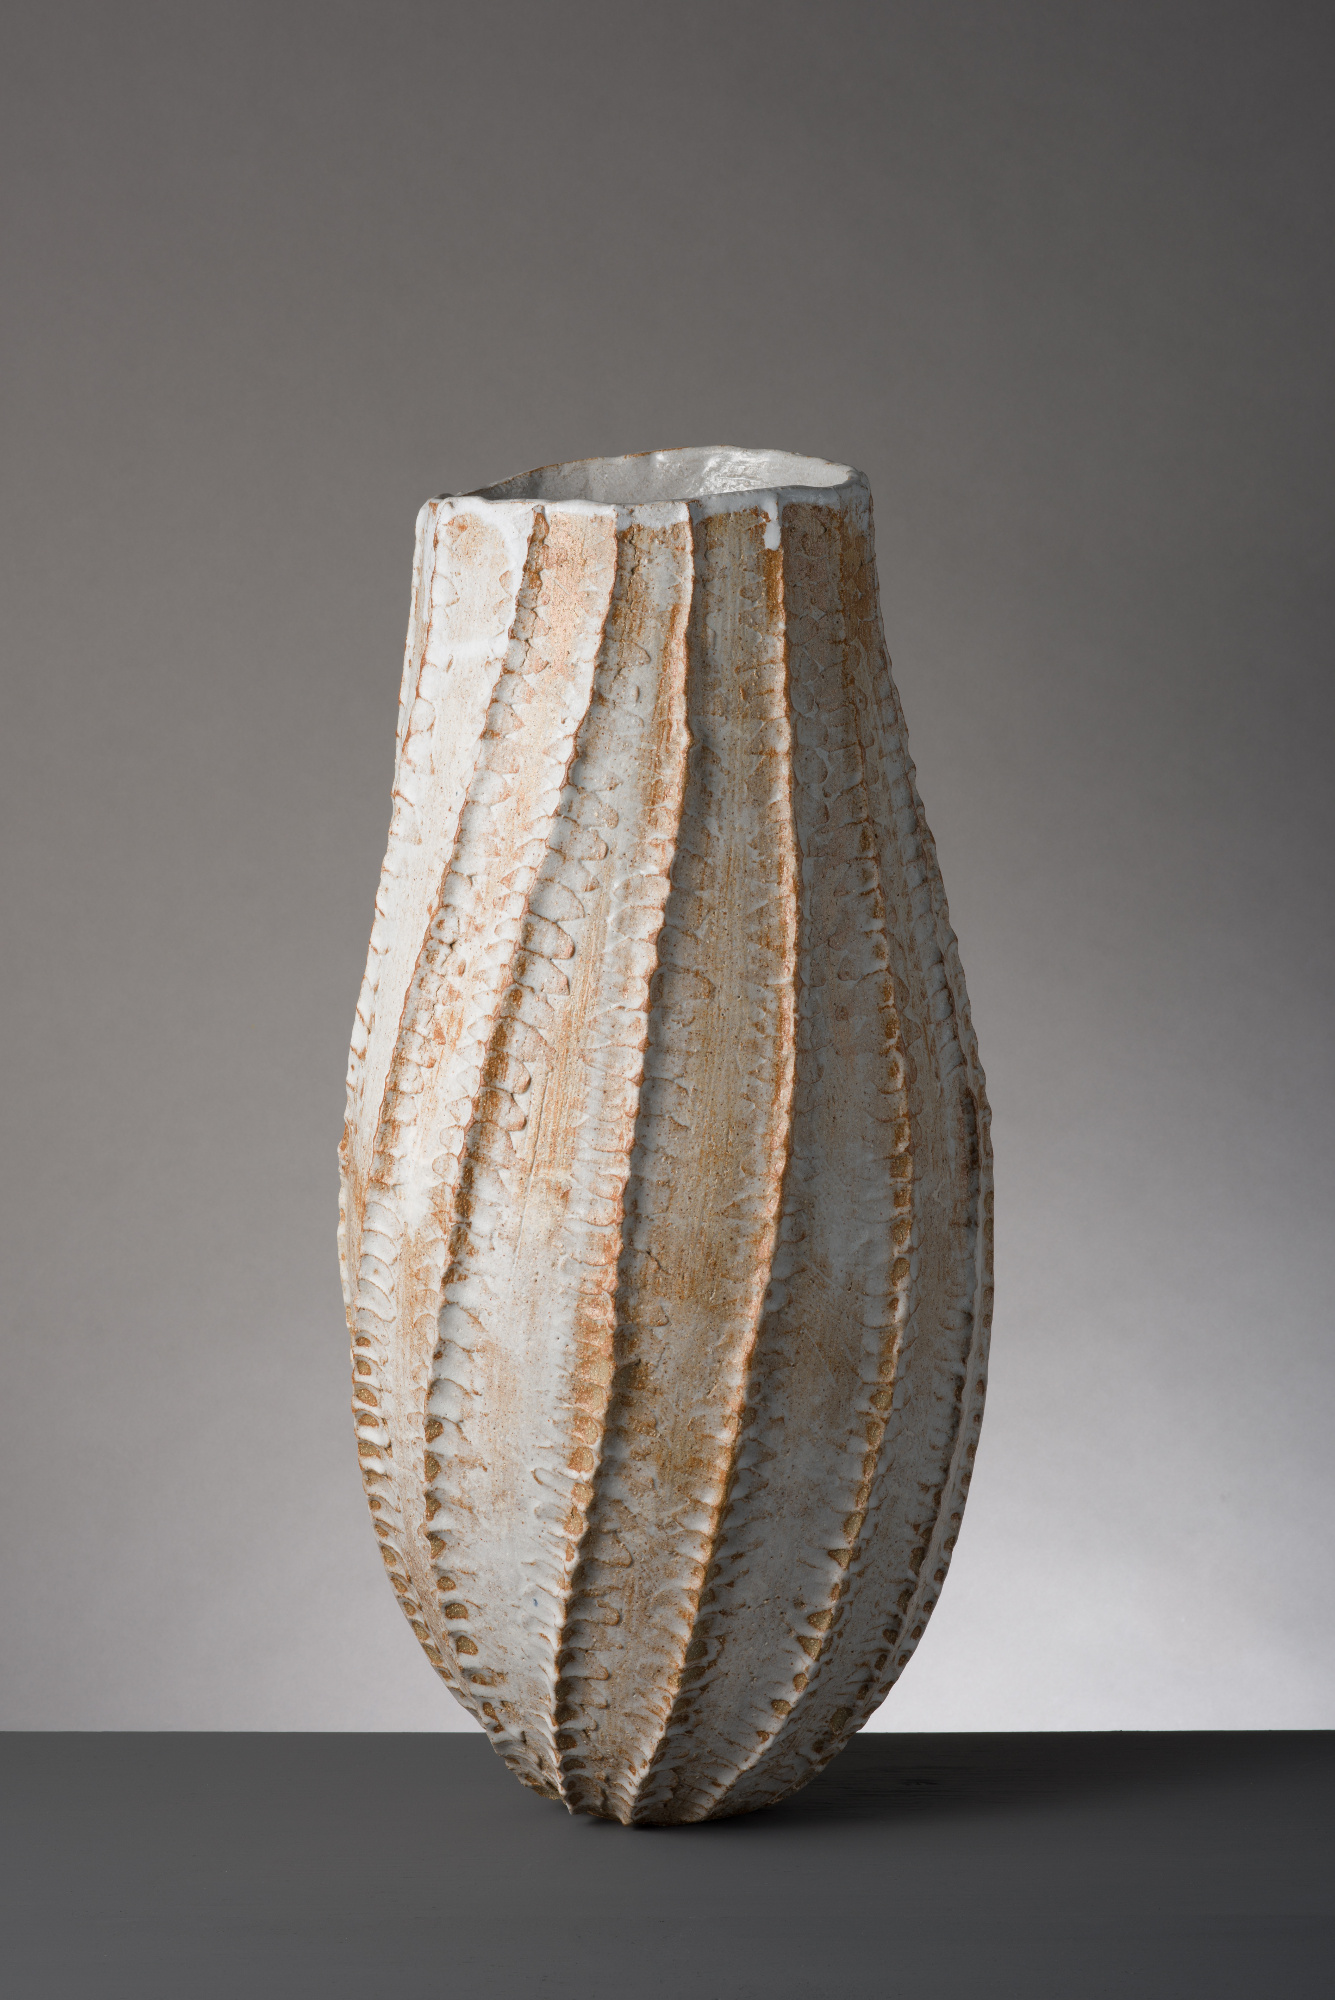 Twisted Brown Vessel  ceramic  45 x 20 x 20cm  £450